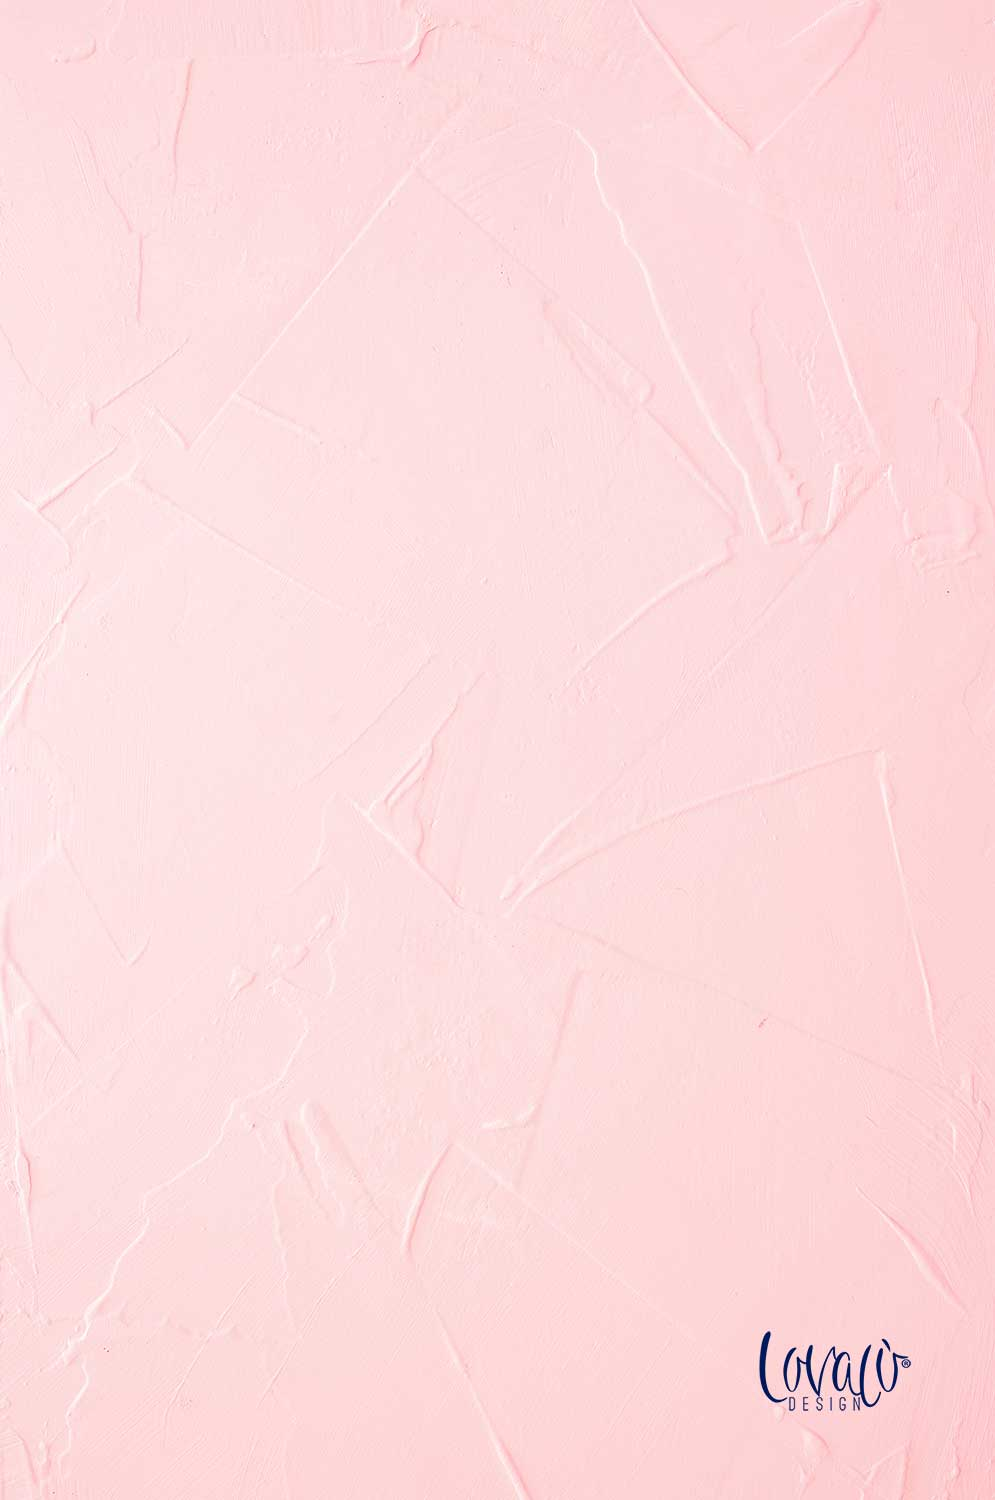 Plaster paint pink photography backdrop - lov 711